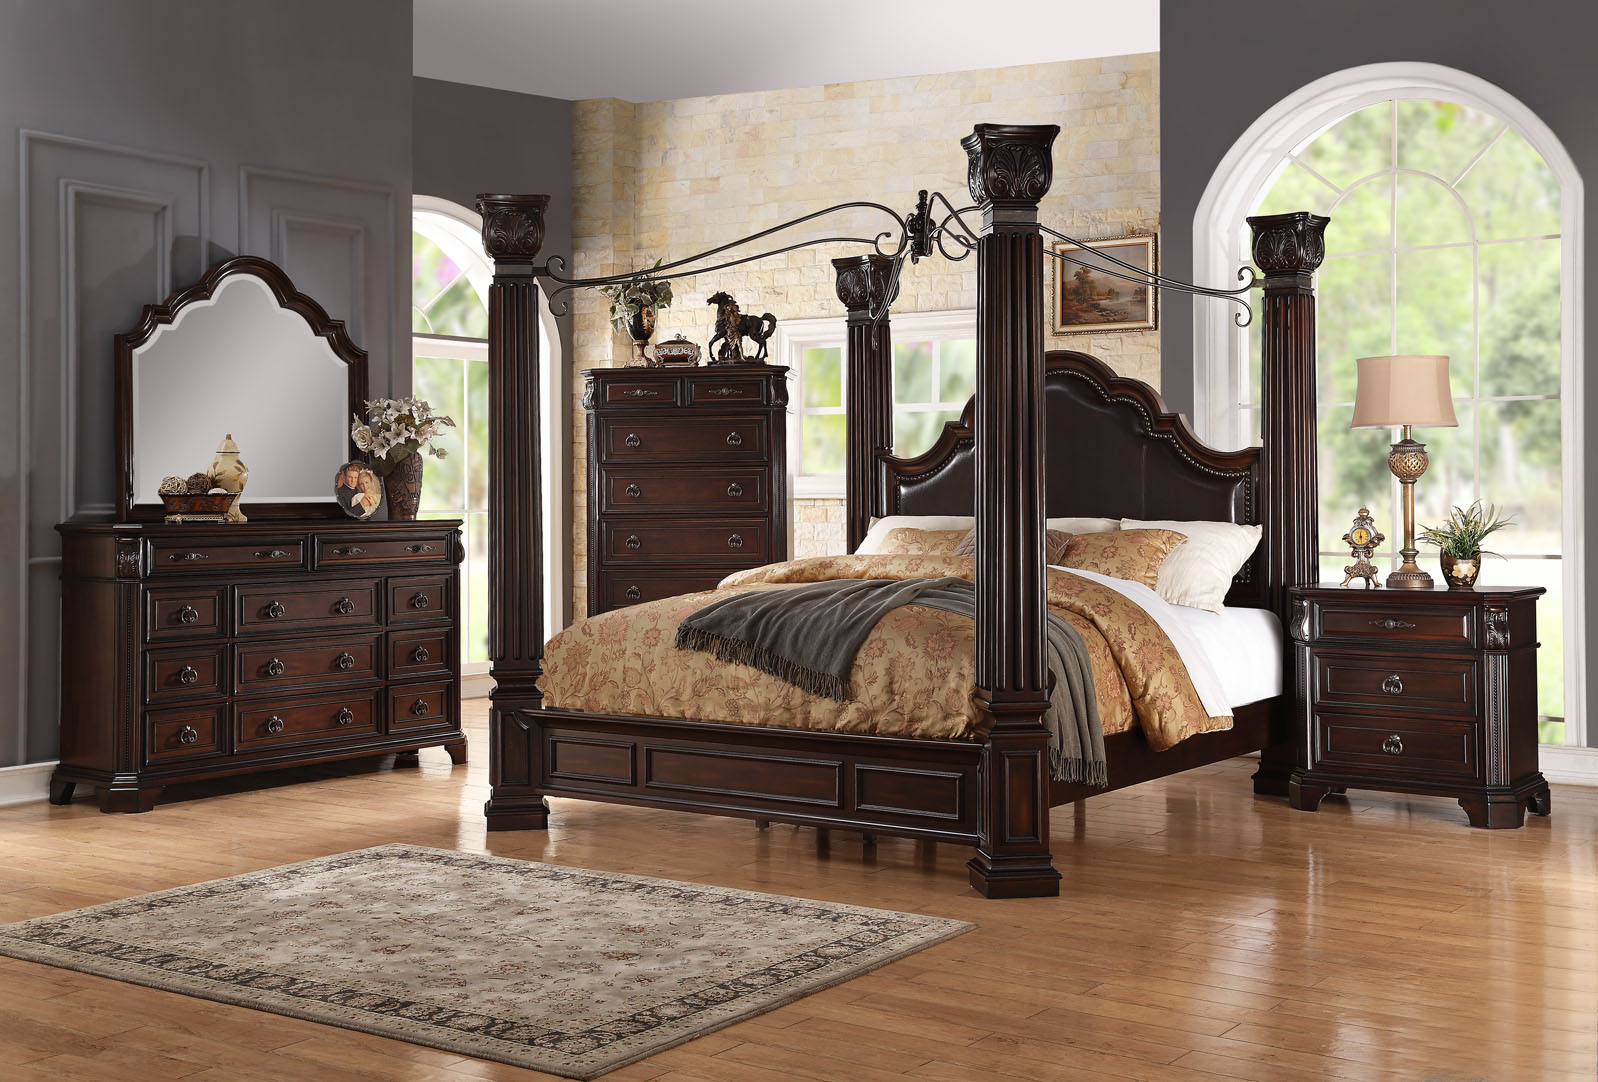 GL-2908 Sarnia Bedroom Set